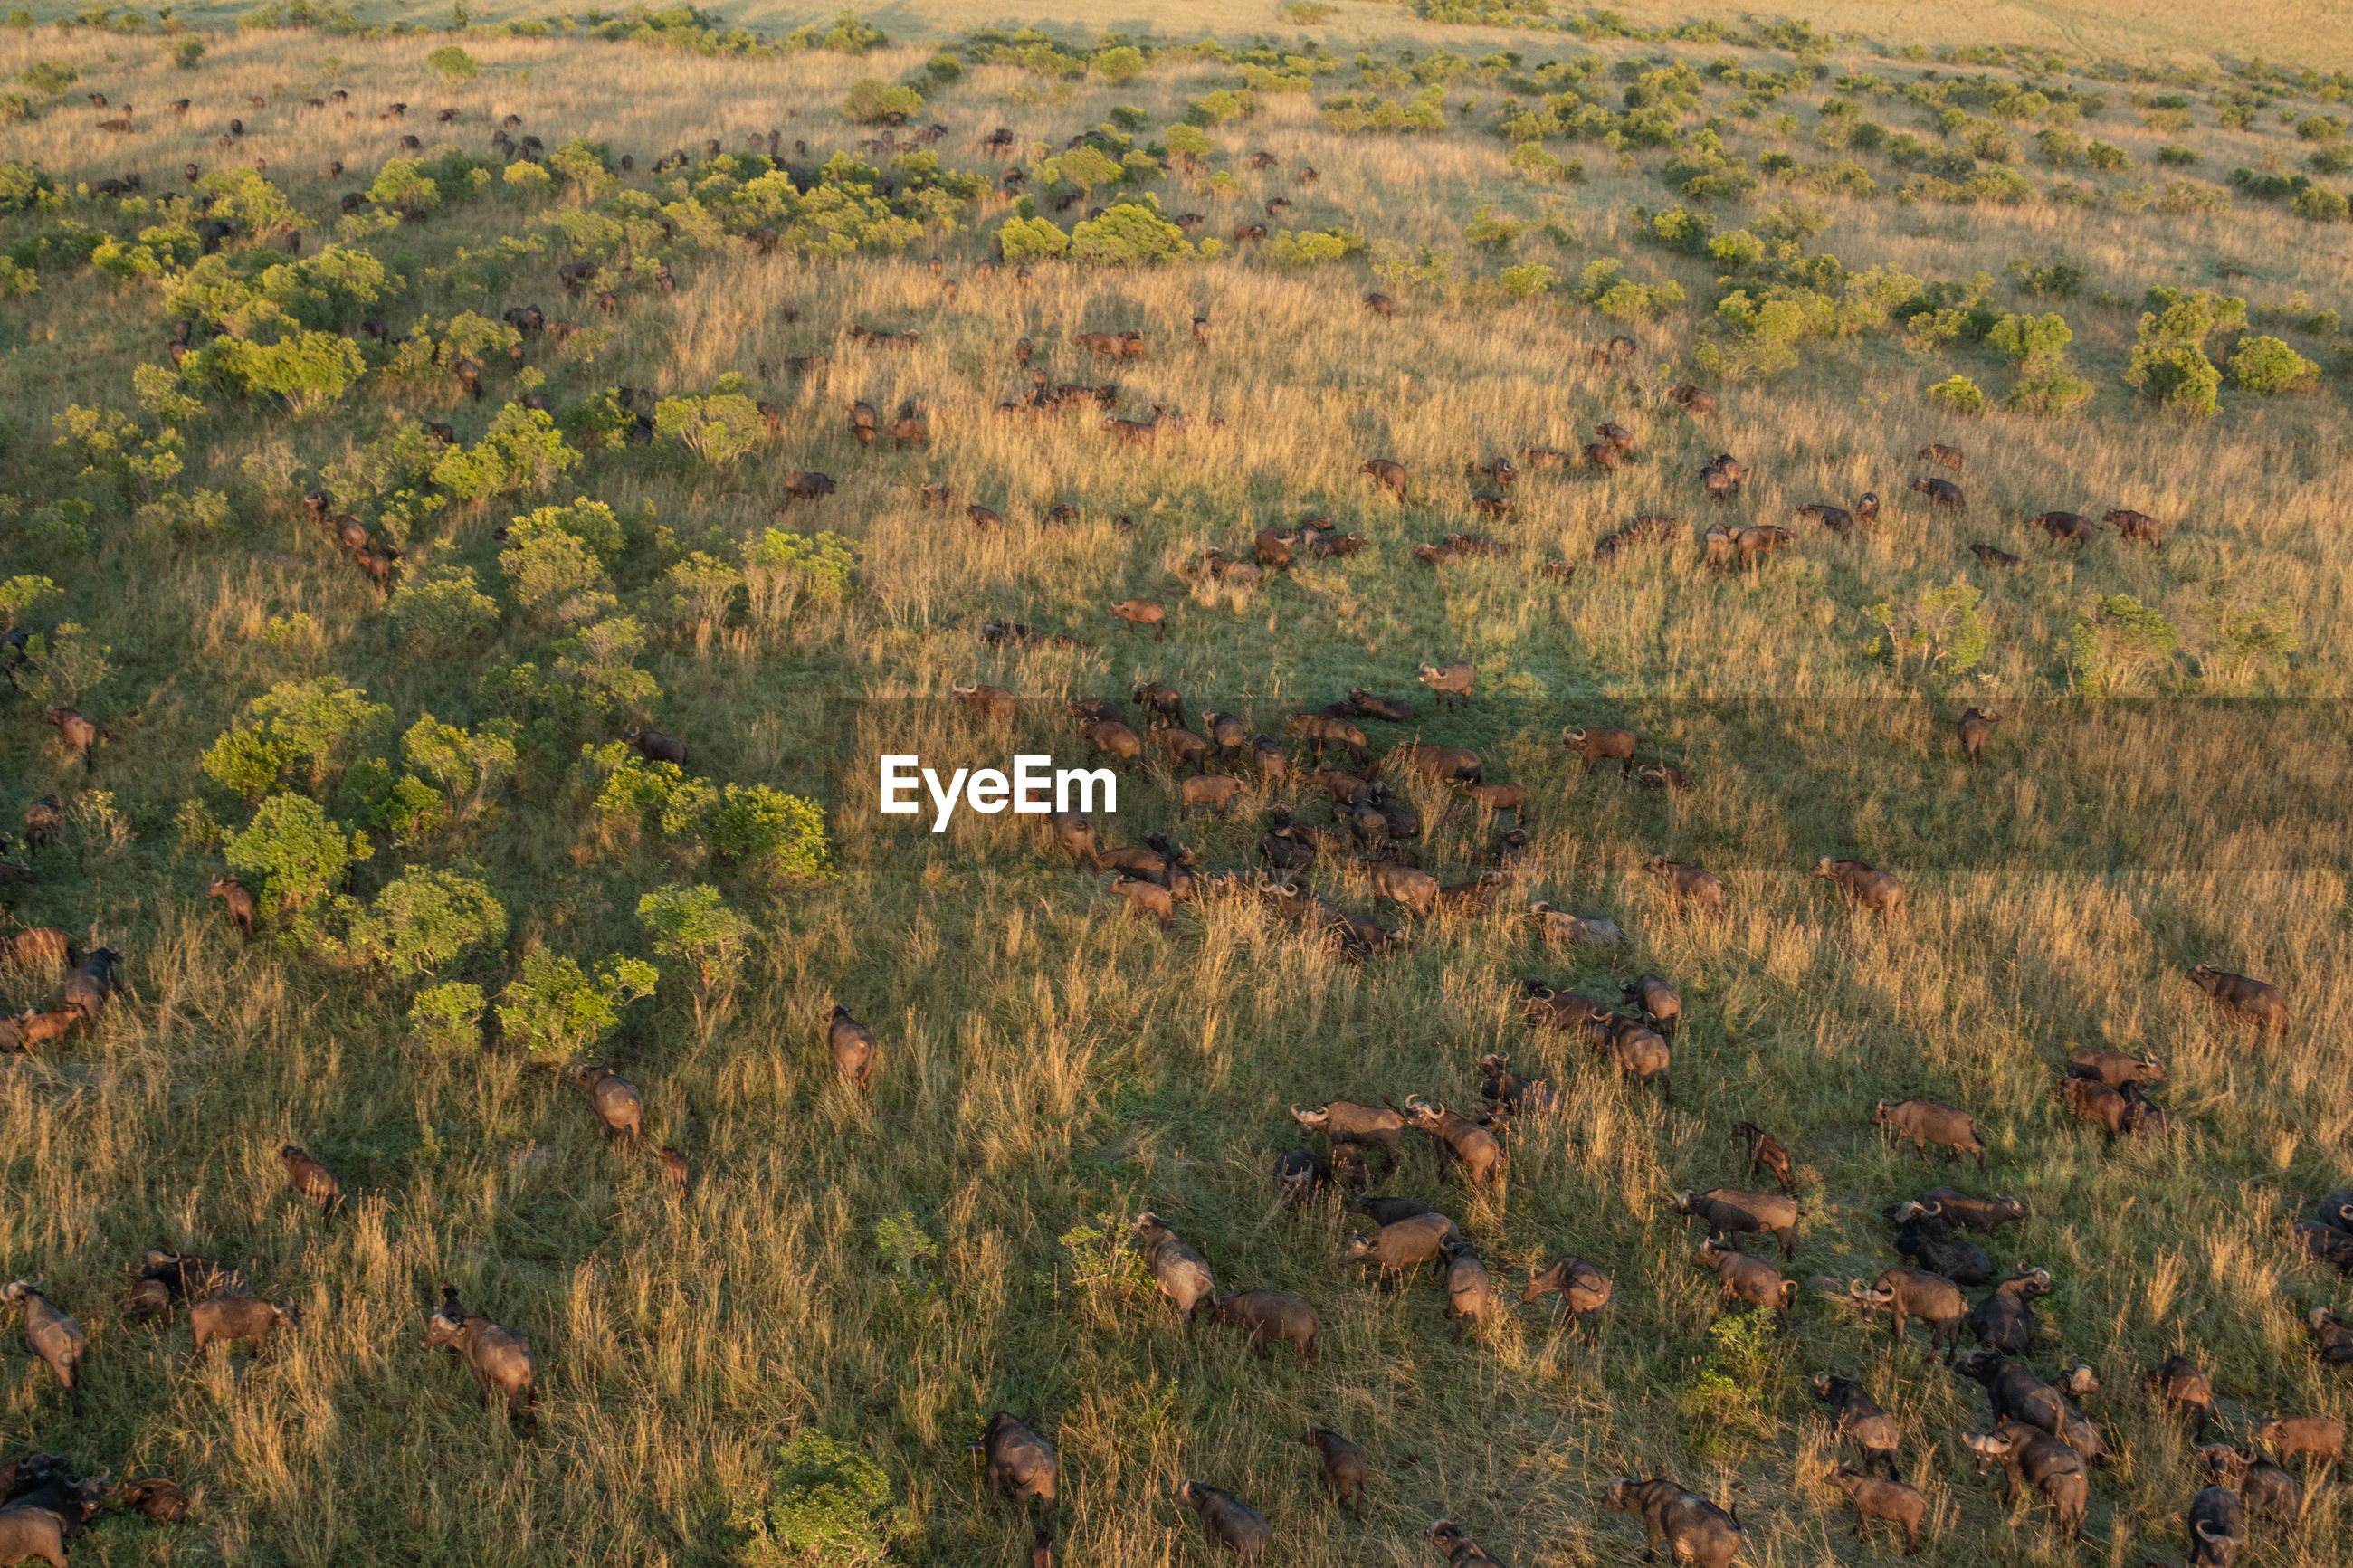 High angle view of wildebeest migration